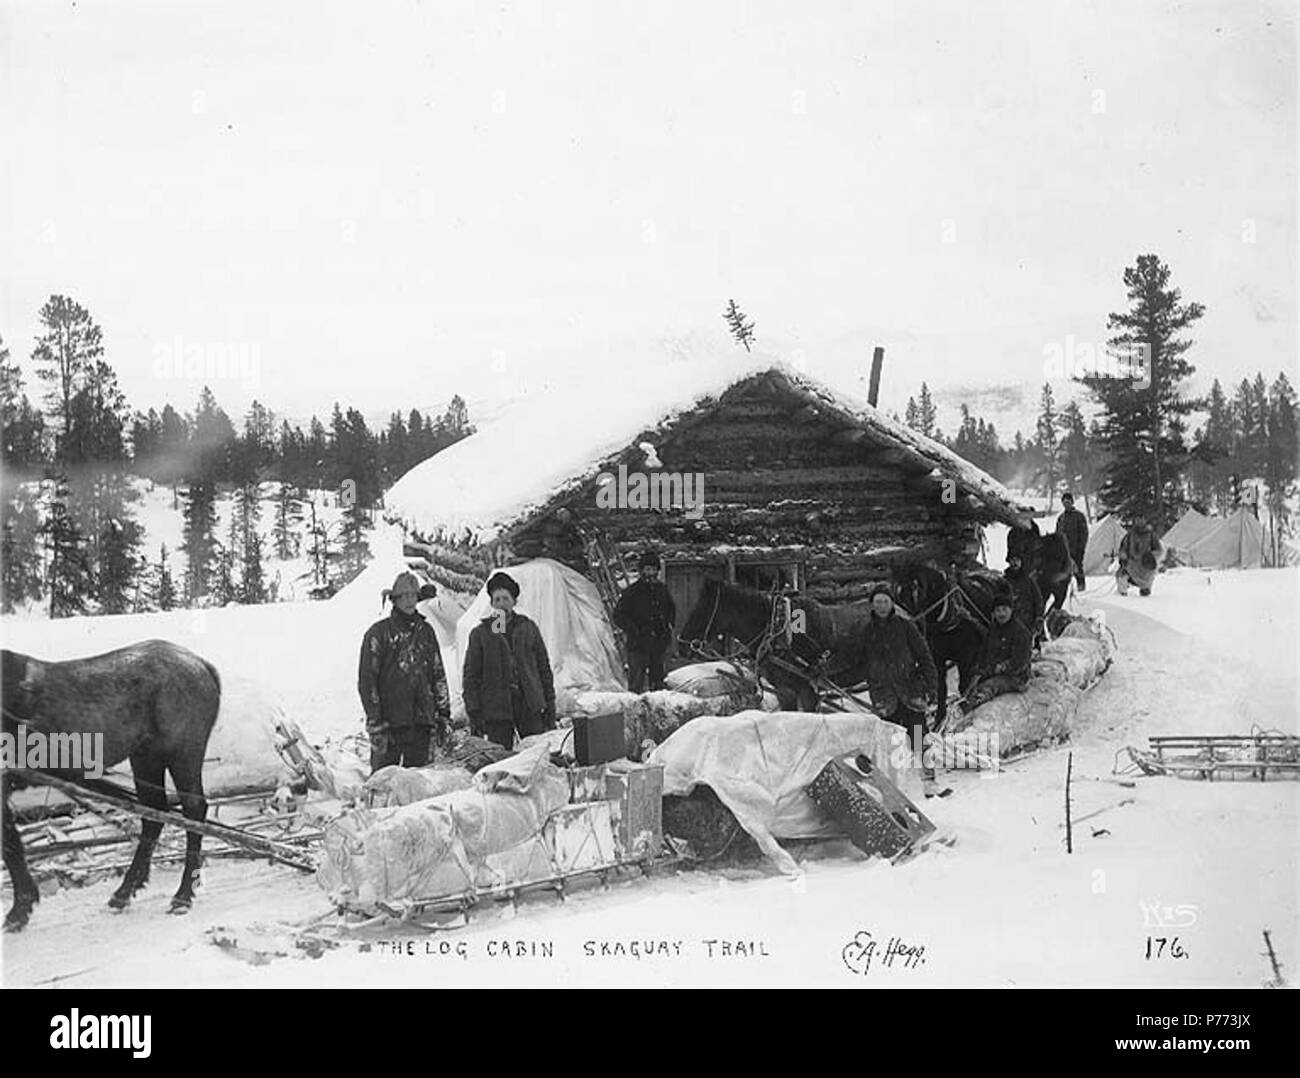 . English: Klondikers with horse drawn sleds resting at a log cabin, White Pass Trail, ca. 1898. English: Possibly site of Log Cabin, British Columbia . Caption on image: 'The Log Cabin Skaguay Trail' Original image in Hegg Album 8, page 32 . Original photograph by Eric A. Hegg 176; copied by Webster and Stevens 176.A . Klondike Gold Rush. Subjects (LCTGM): Log cabins--British Columbia; Sleds & sleighs--British Columbia; Tents--British Columbia Subjects (LCSH): White Pass Trail; Trails--British Columbia  . circa 1898 7 Klondikers with horse drawn sleds resting at a log cabin, White Pass Trail, - Stock Image